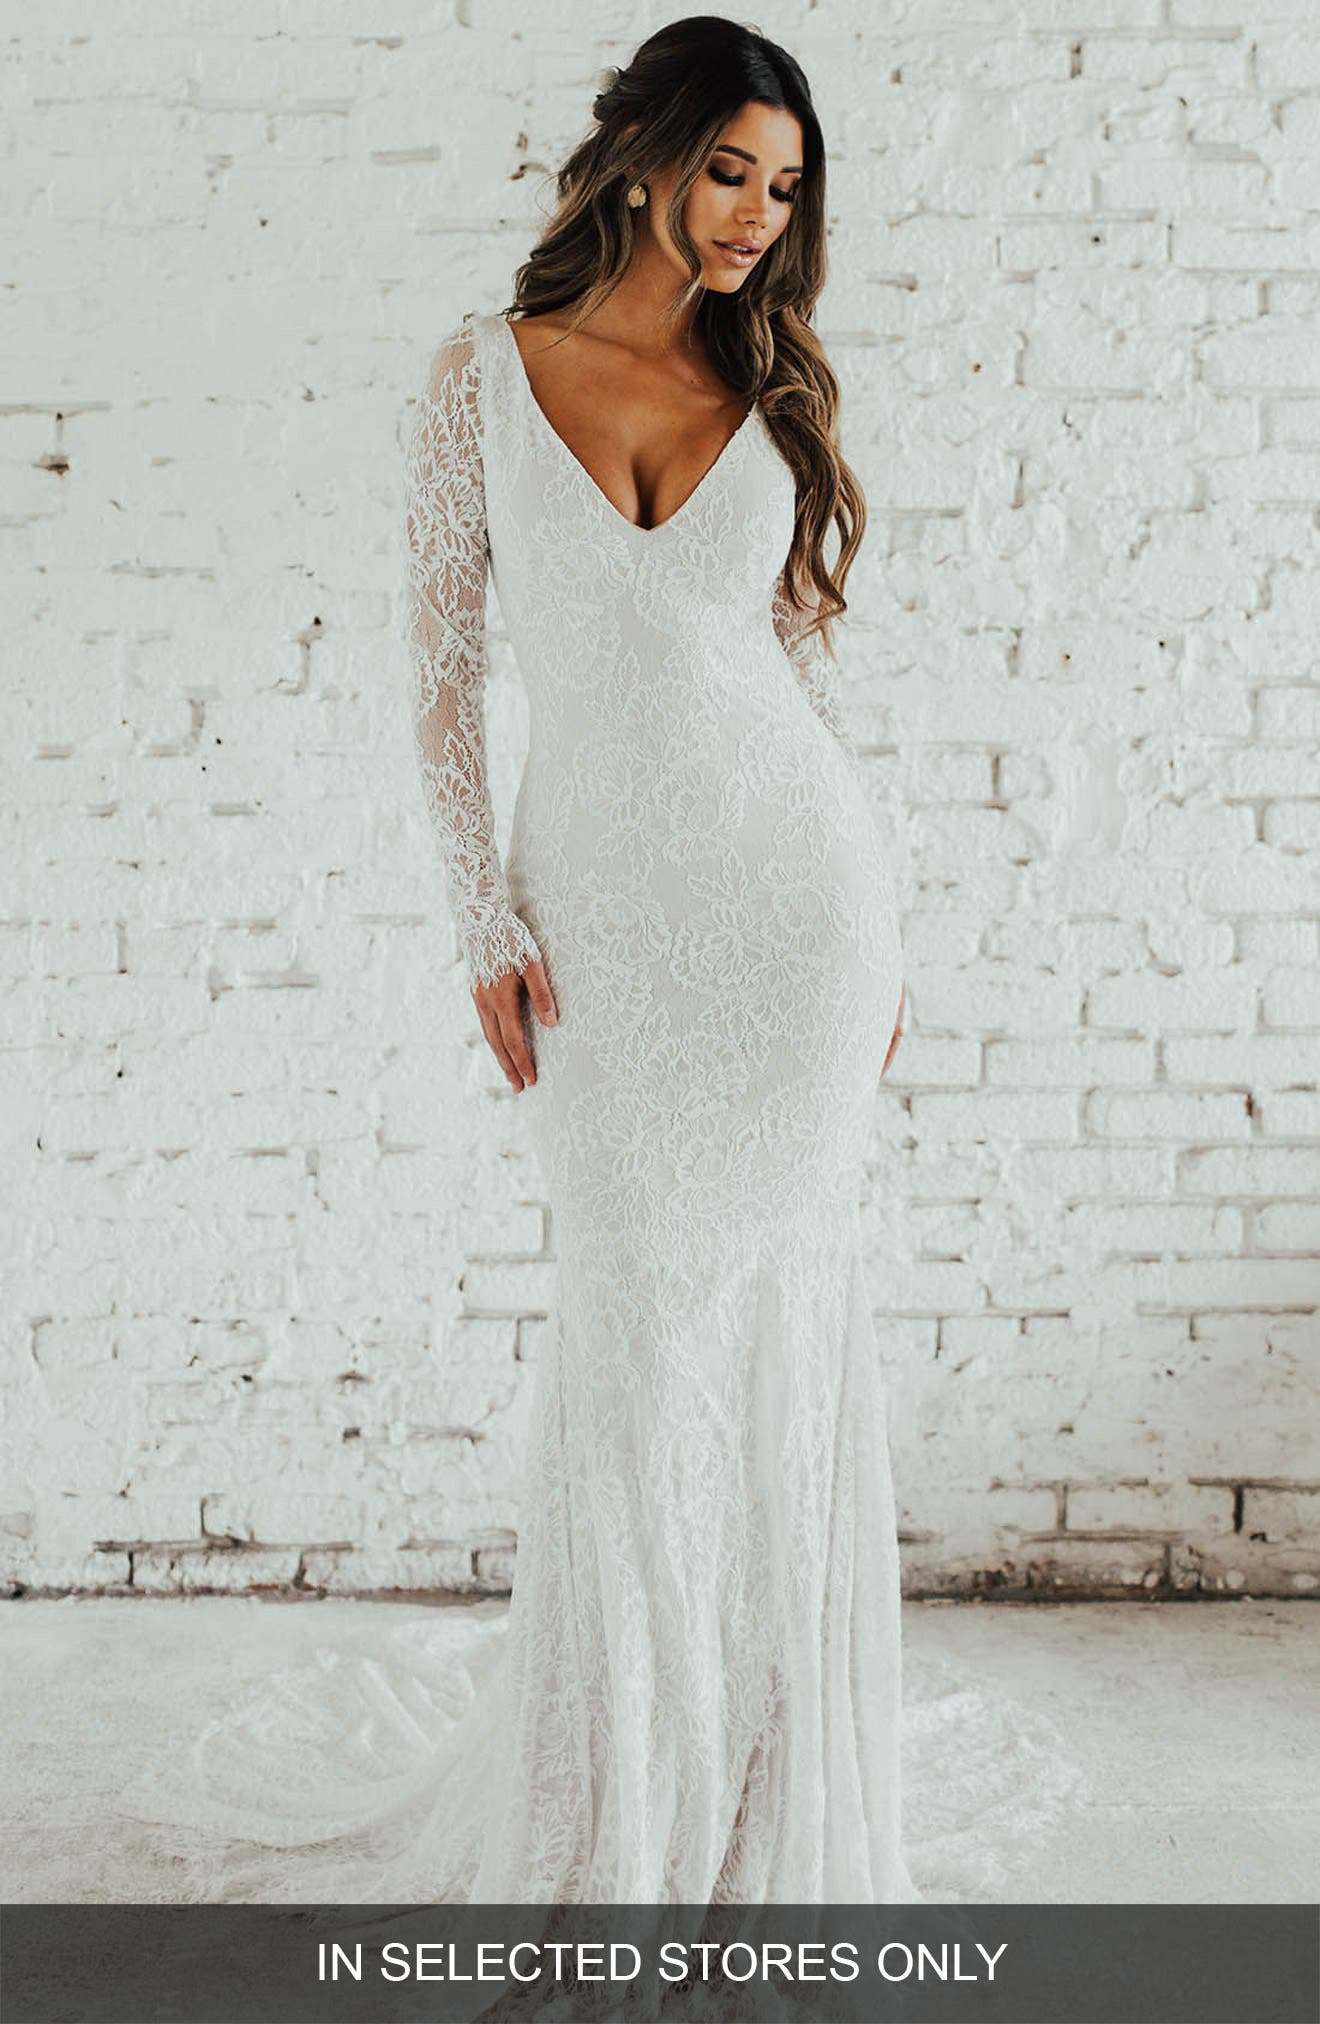 San Sebastian Lace Mermaid Gown,                             Main thumbnail 1, color,                             Ivory/ Nude